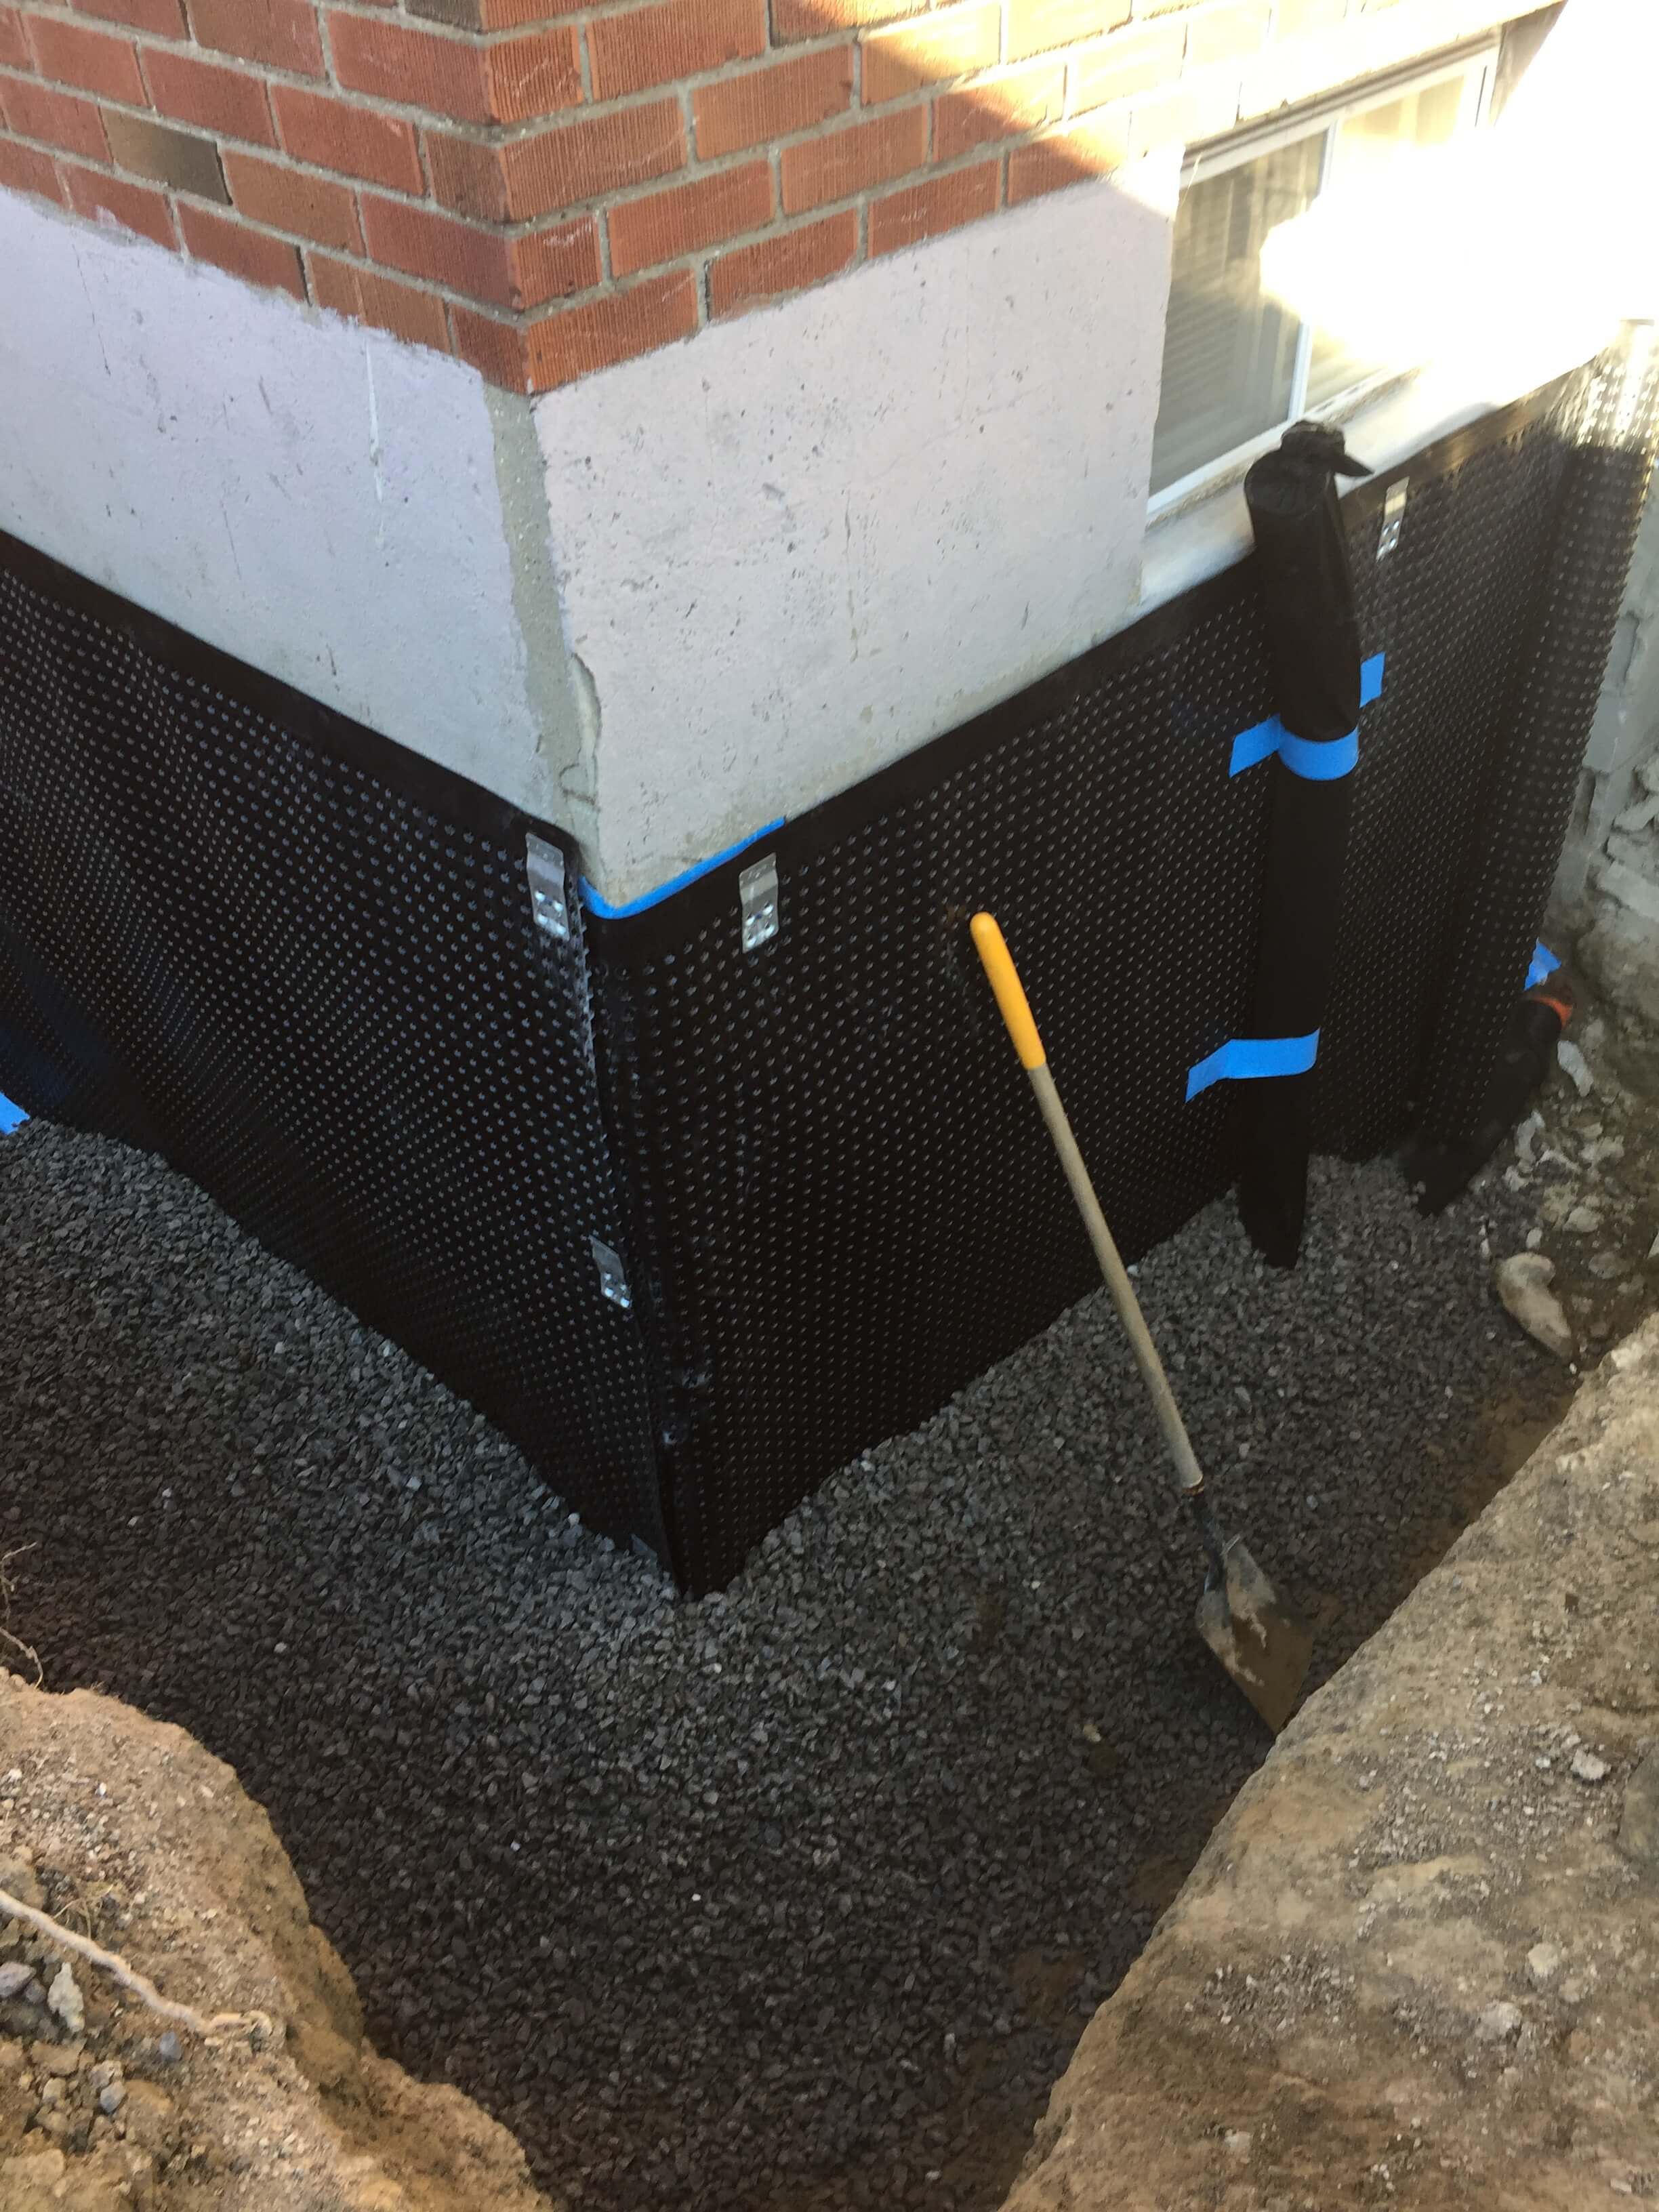 Basement-Waterproofing-Company-Scarborough-Citadel-Dr-5